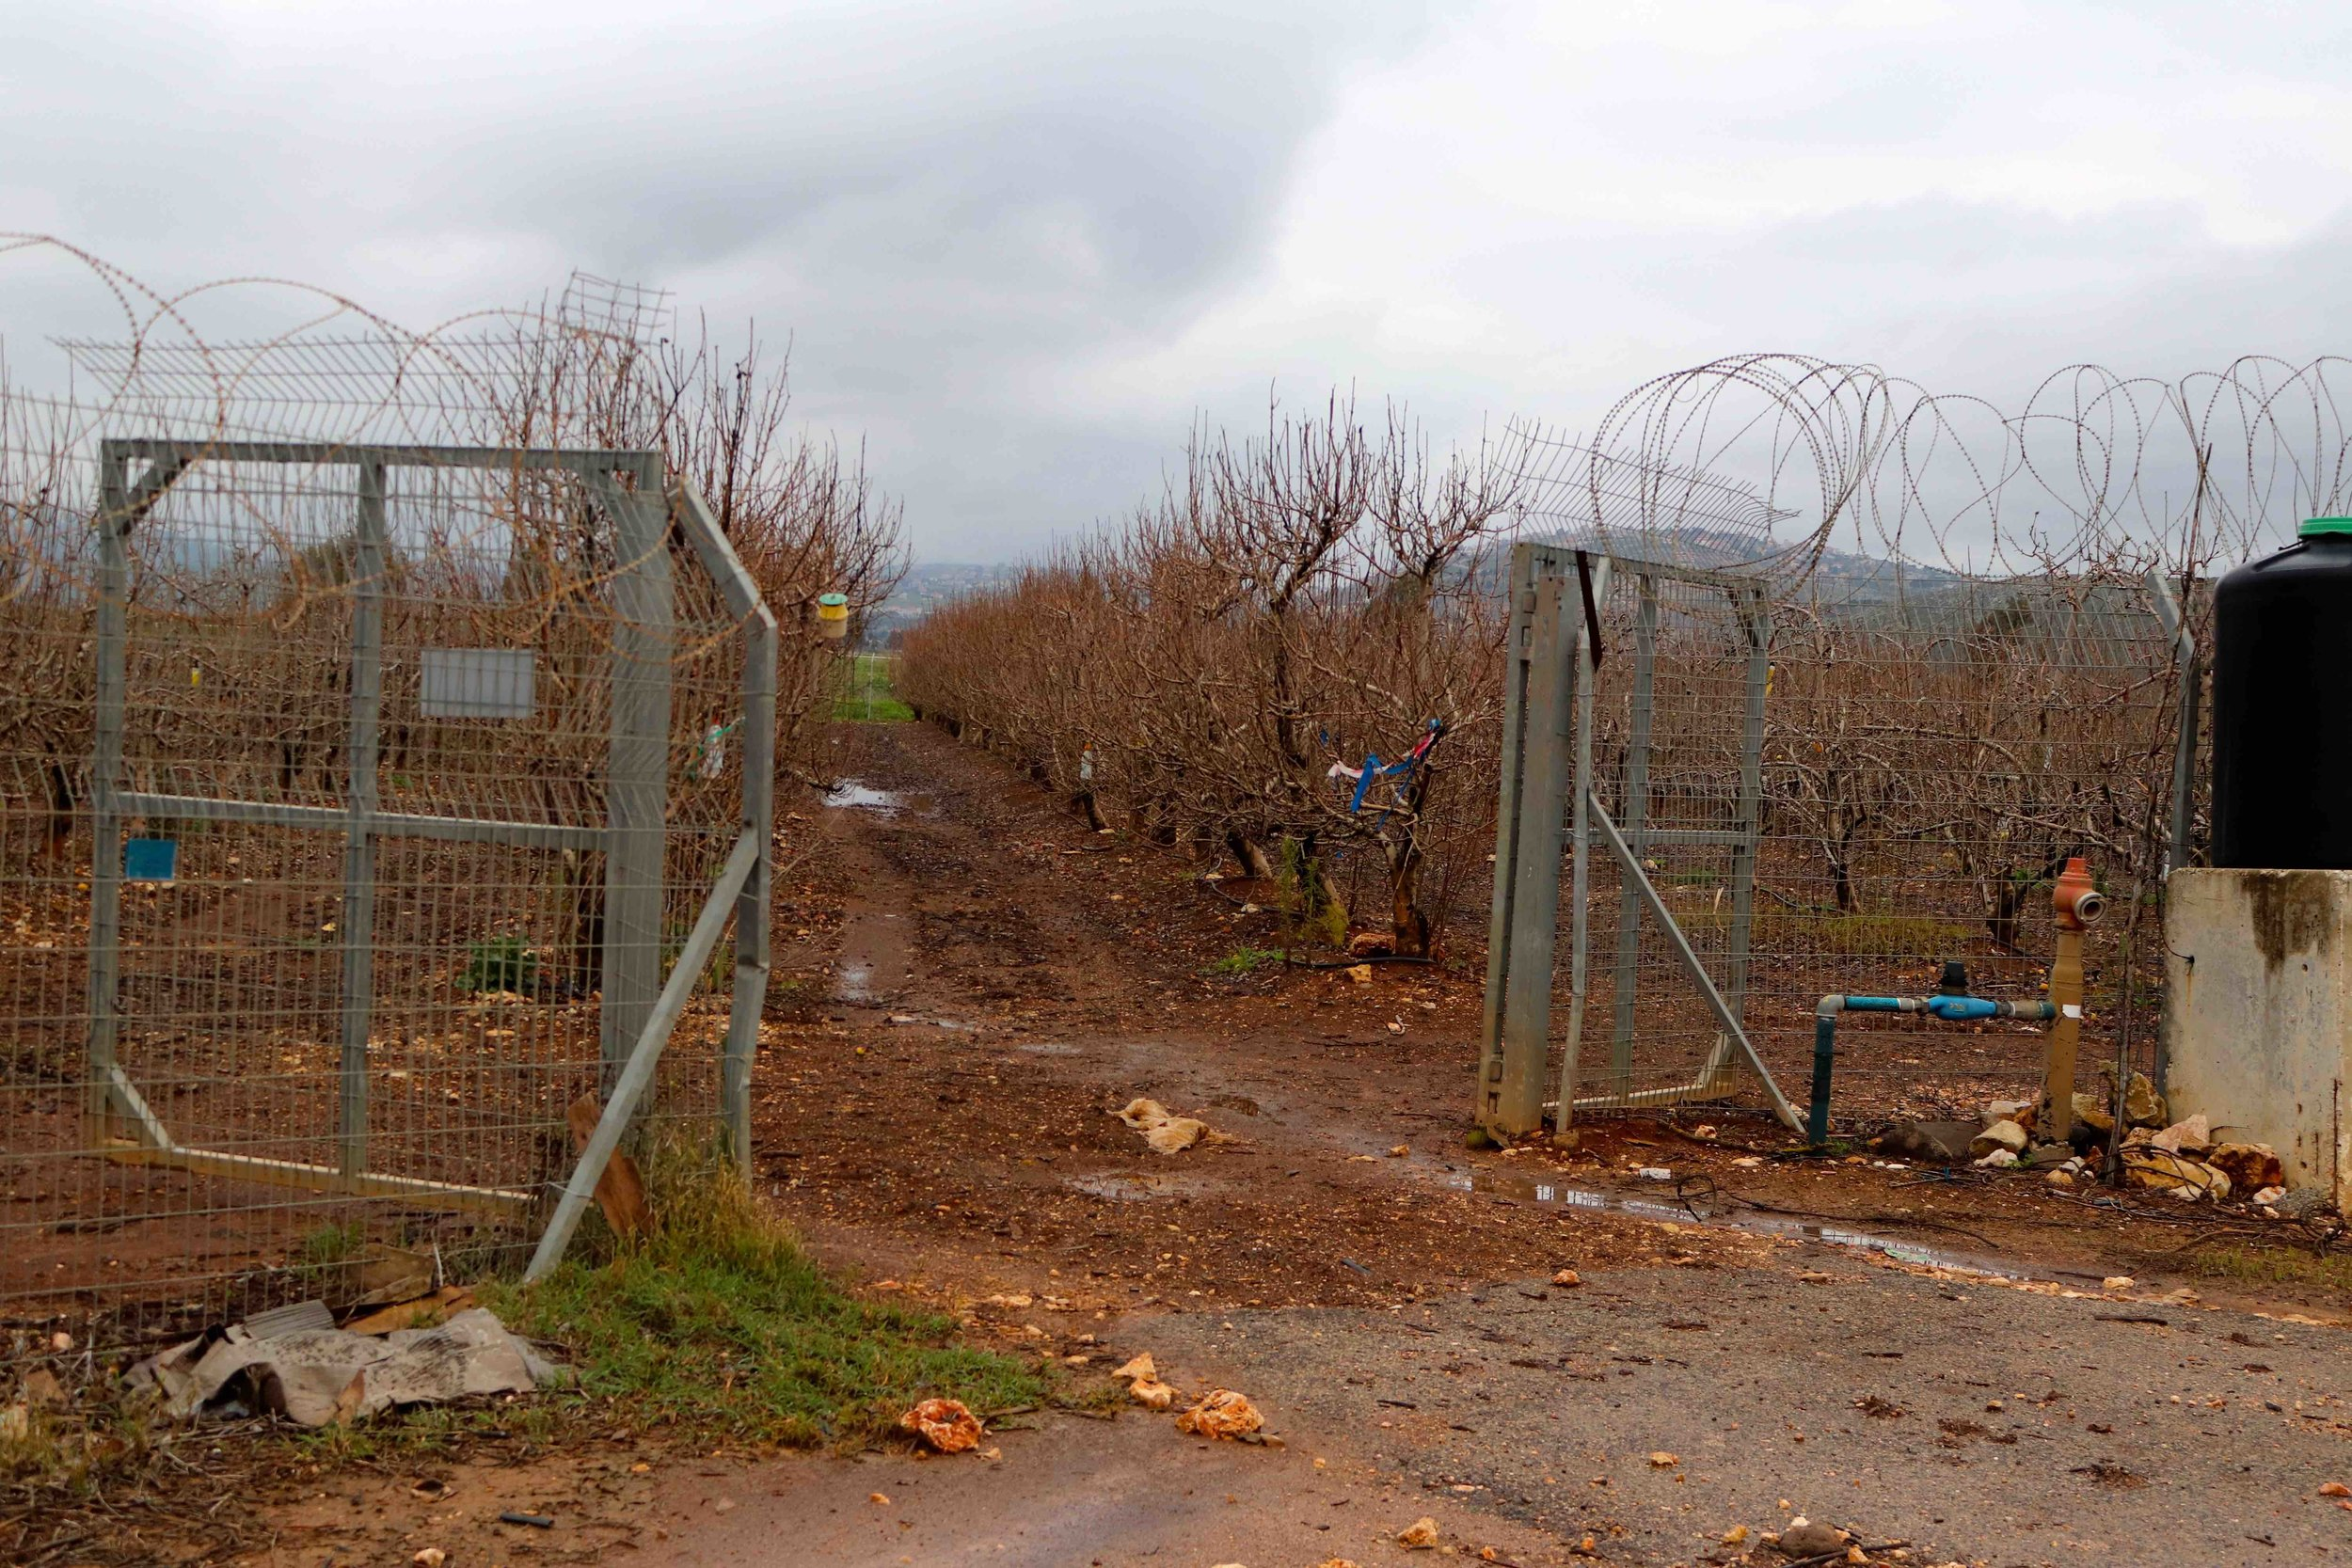 Apples are a big crop in northern Israel, just as in Central New York. These are Pink Lady trees. The security isn't about people stealing apples, it's about crossing borders.